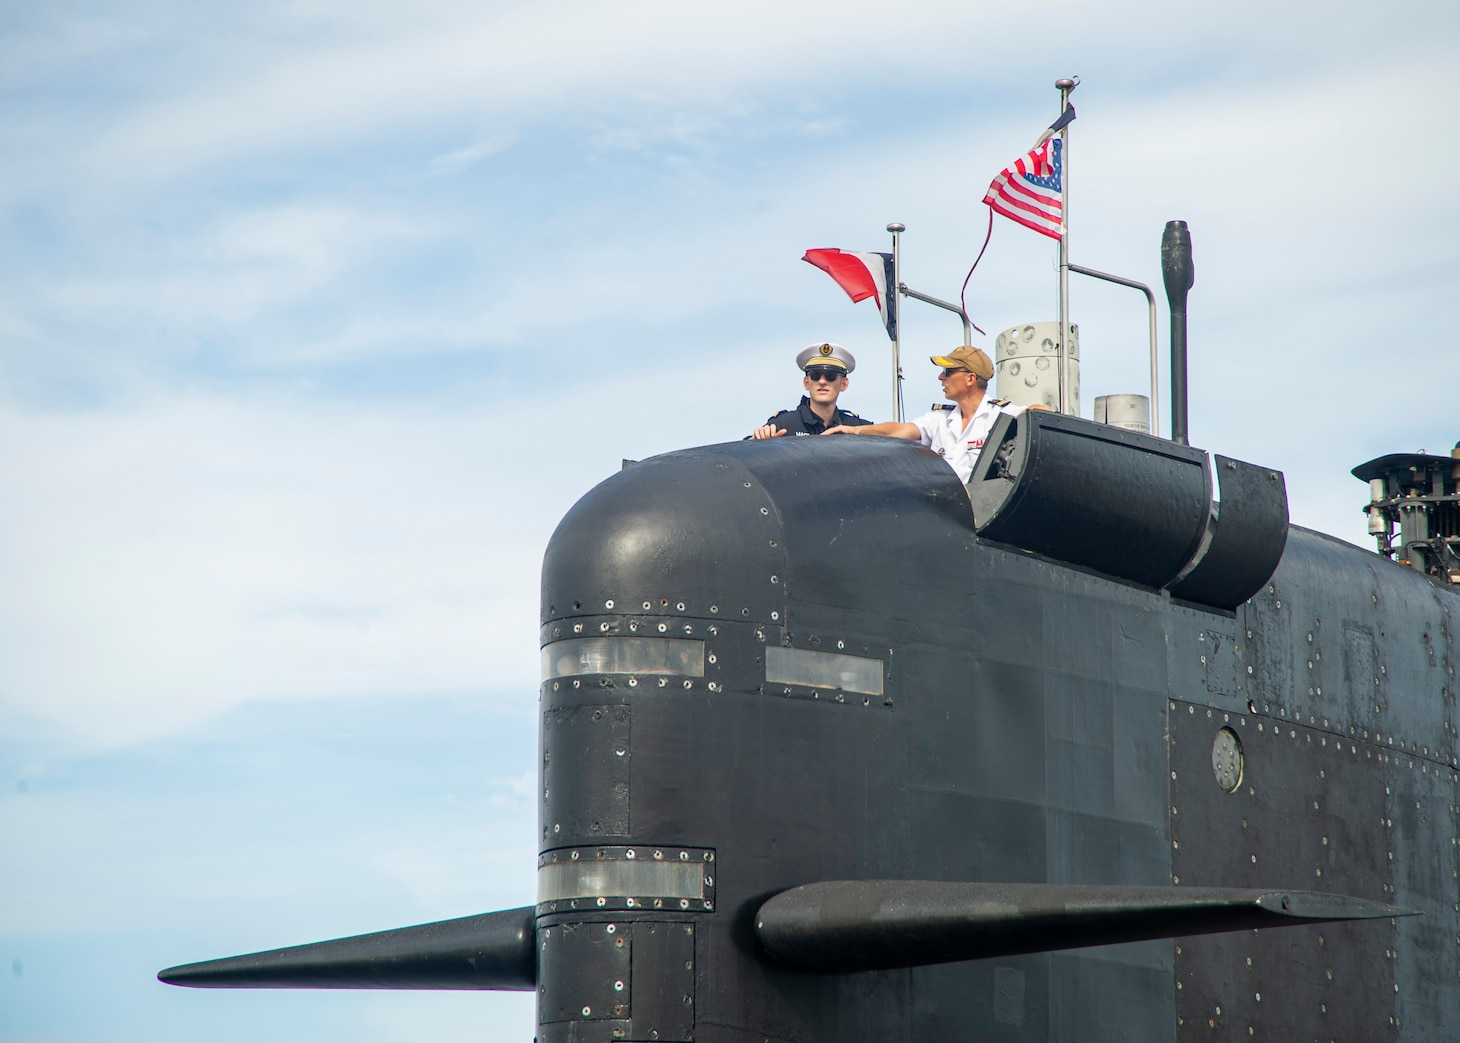 Leadership aboard the French submarine FNS Améthyste (S605) man the boat's conning tower as it moors pier side at Naval Station Norfolk, Sept. 16, 2021.